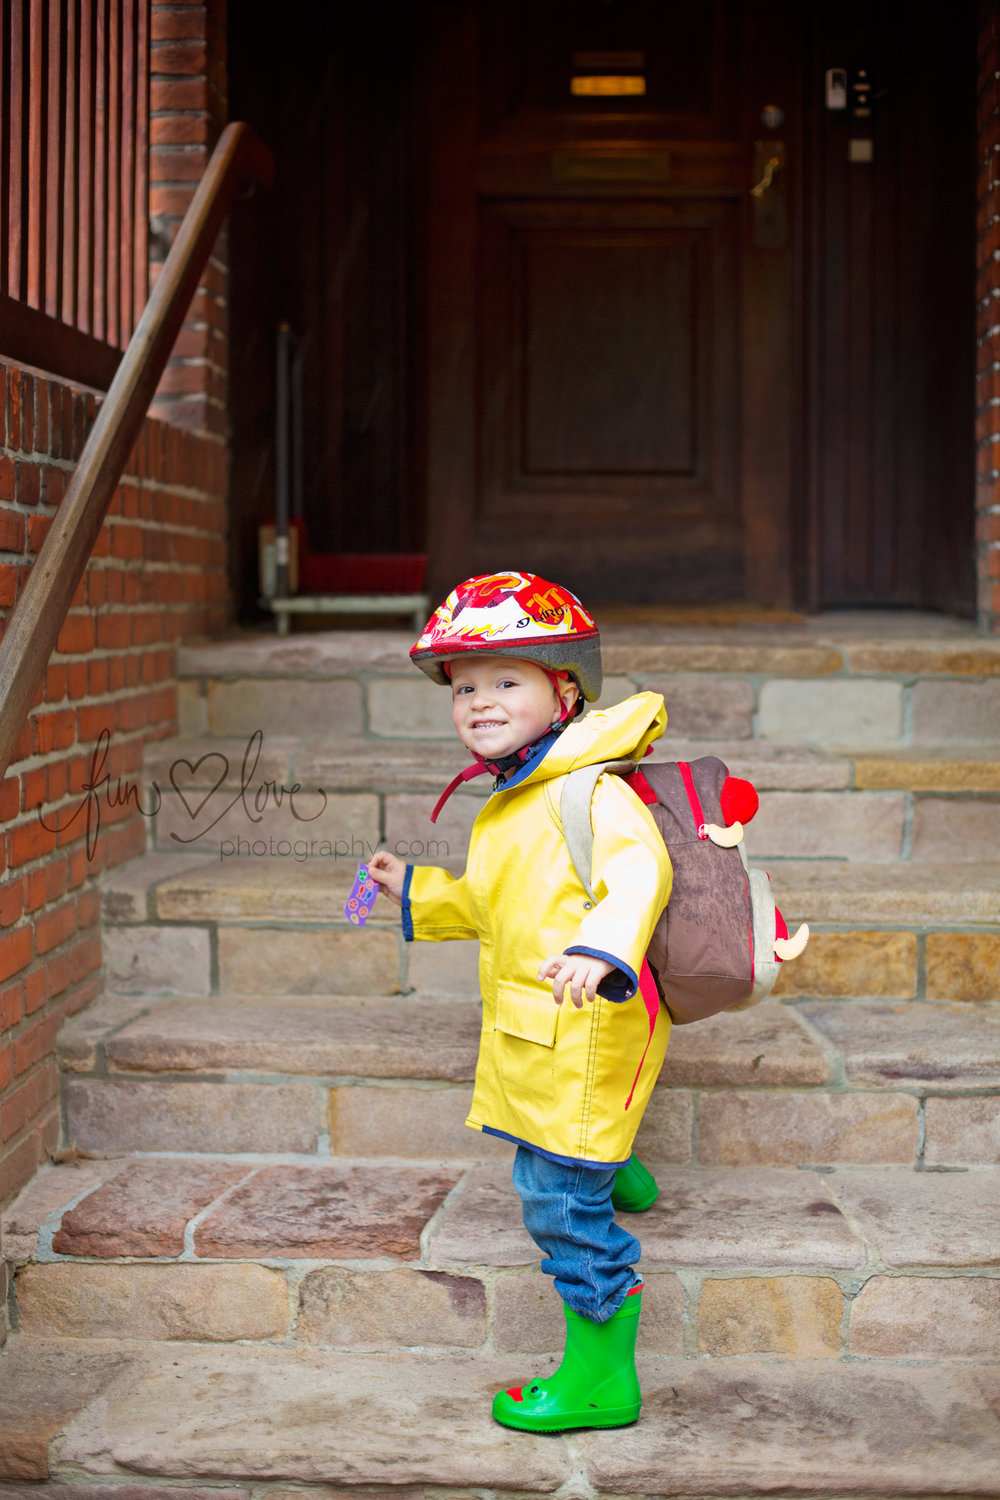 On the front steps - home or school.